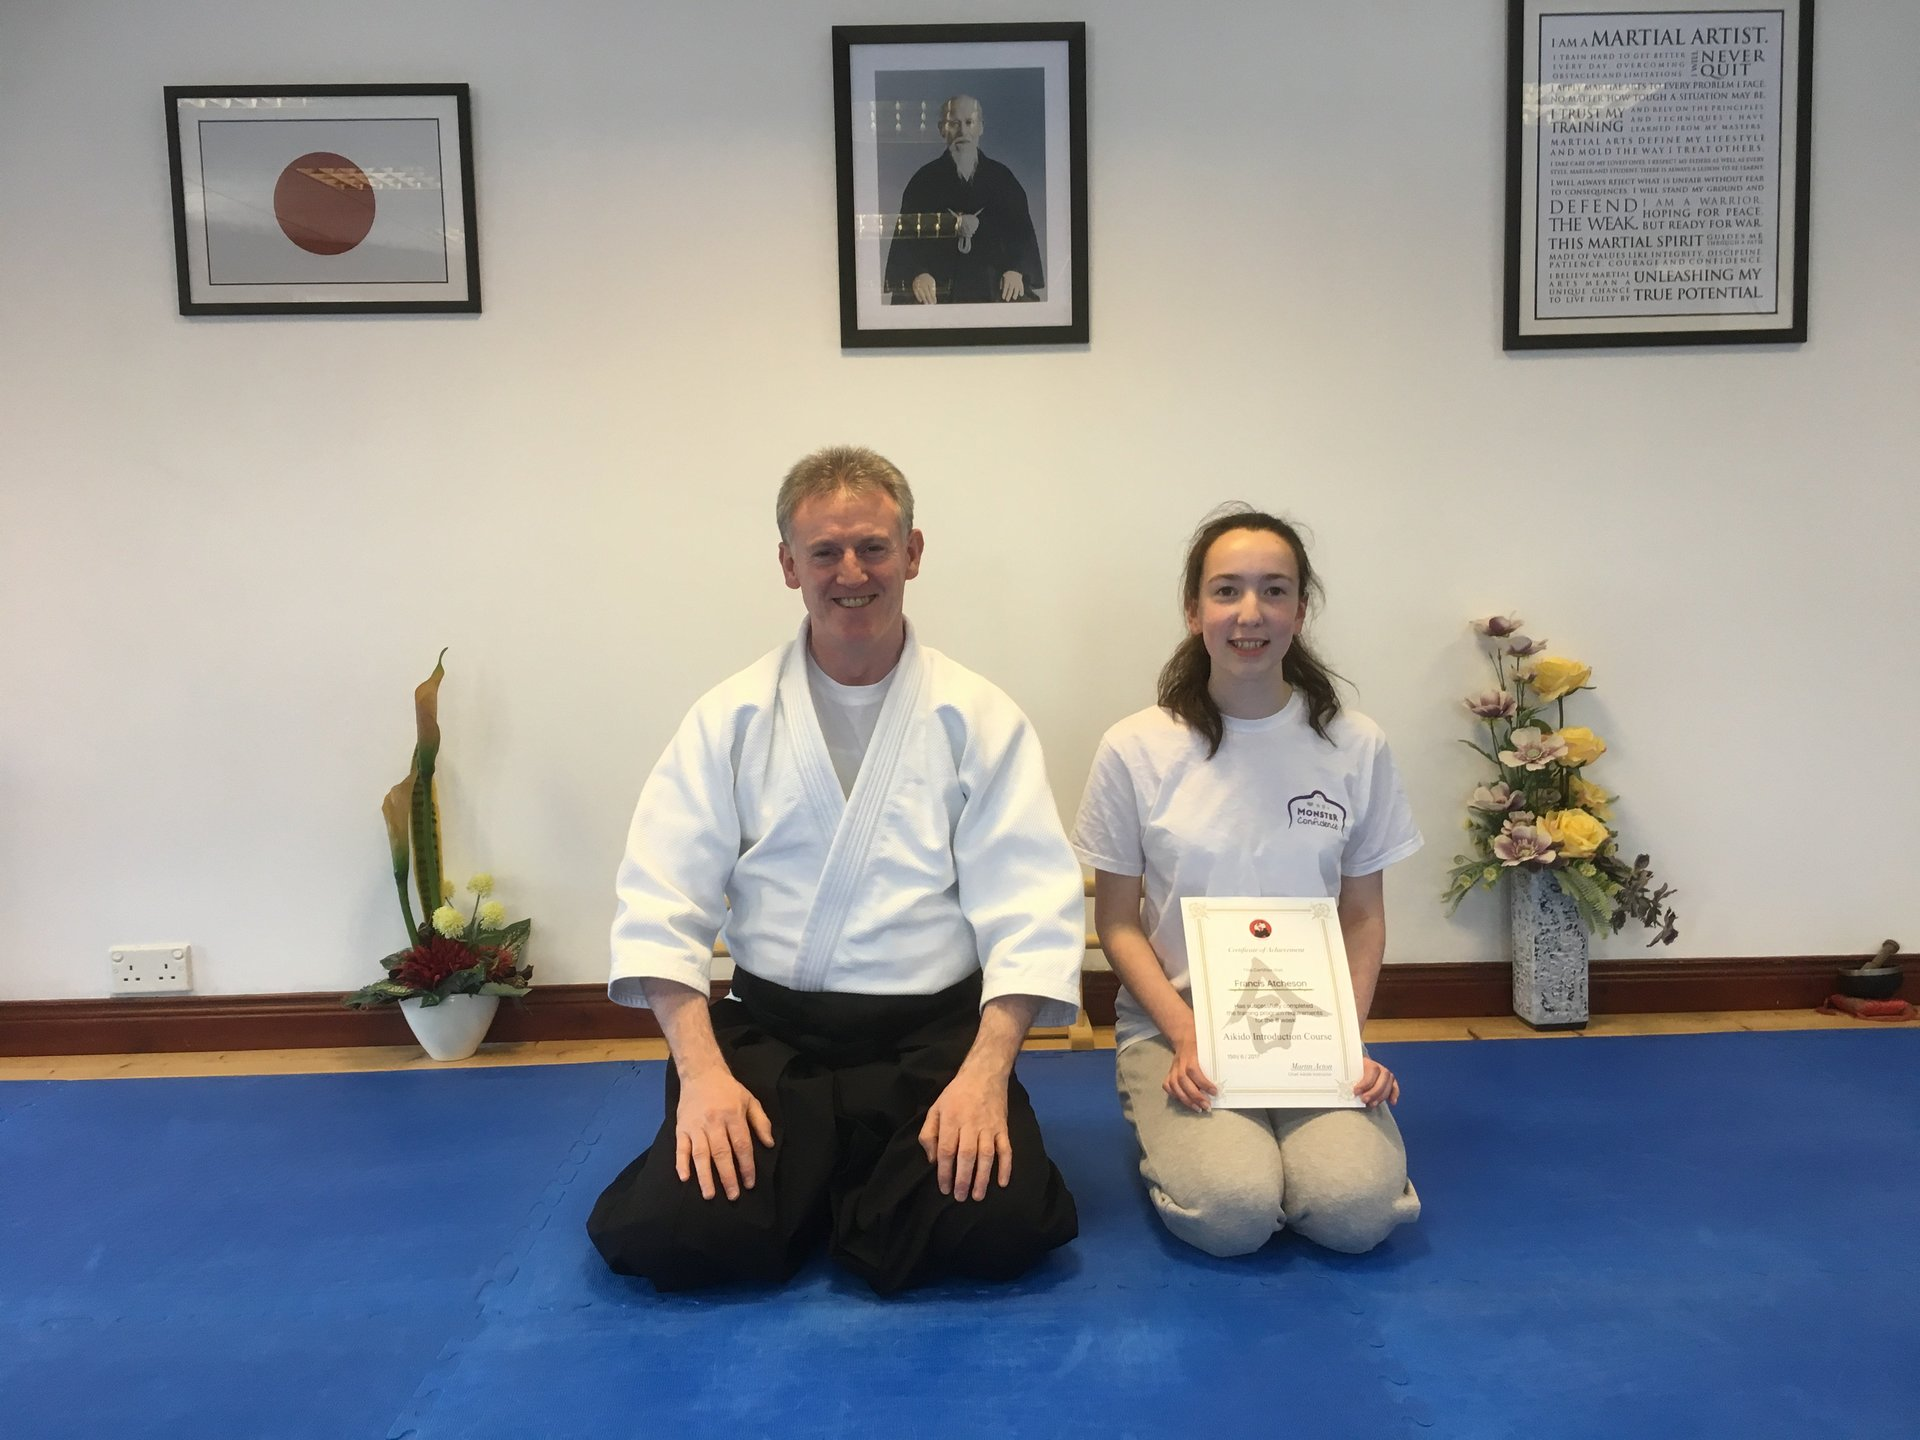 Francis Atcheson receiving her Aikido 8-week introduction course certification  with Martin Acton on the 15th/6/2017 at Martin Acton's Aikido Institute.